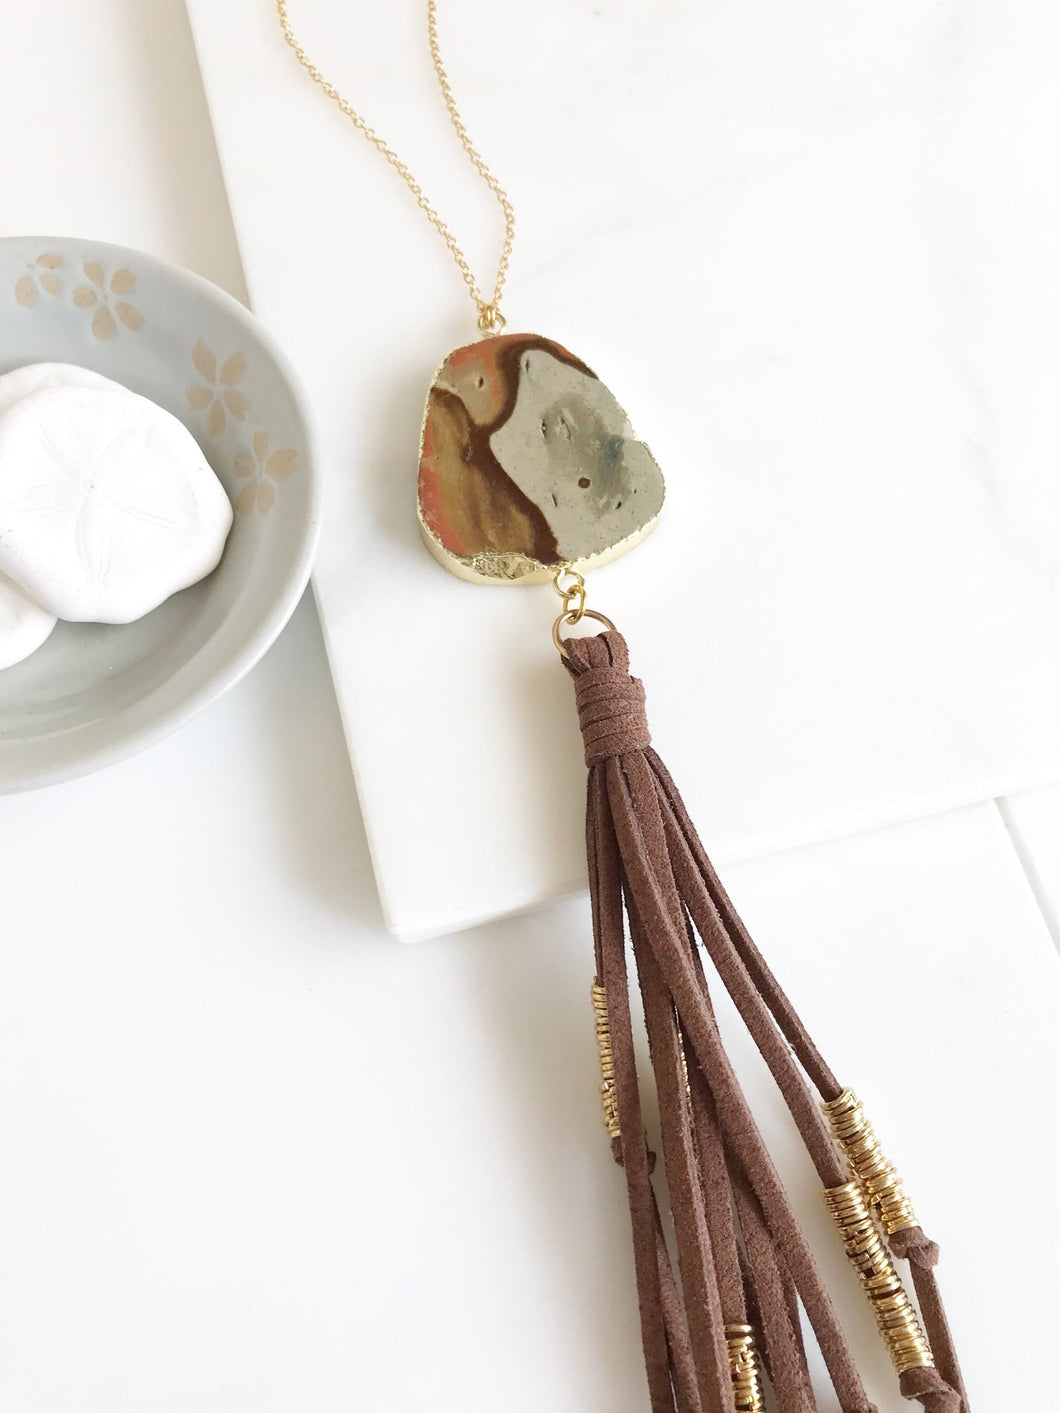 Boho Tassel Necklace. Stone and Brown Tassel Necklace. Long Brown Slice Tassel Necklace. Boho Jewelry. Unique Gift Idea.